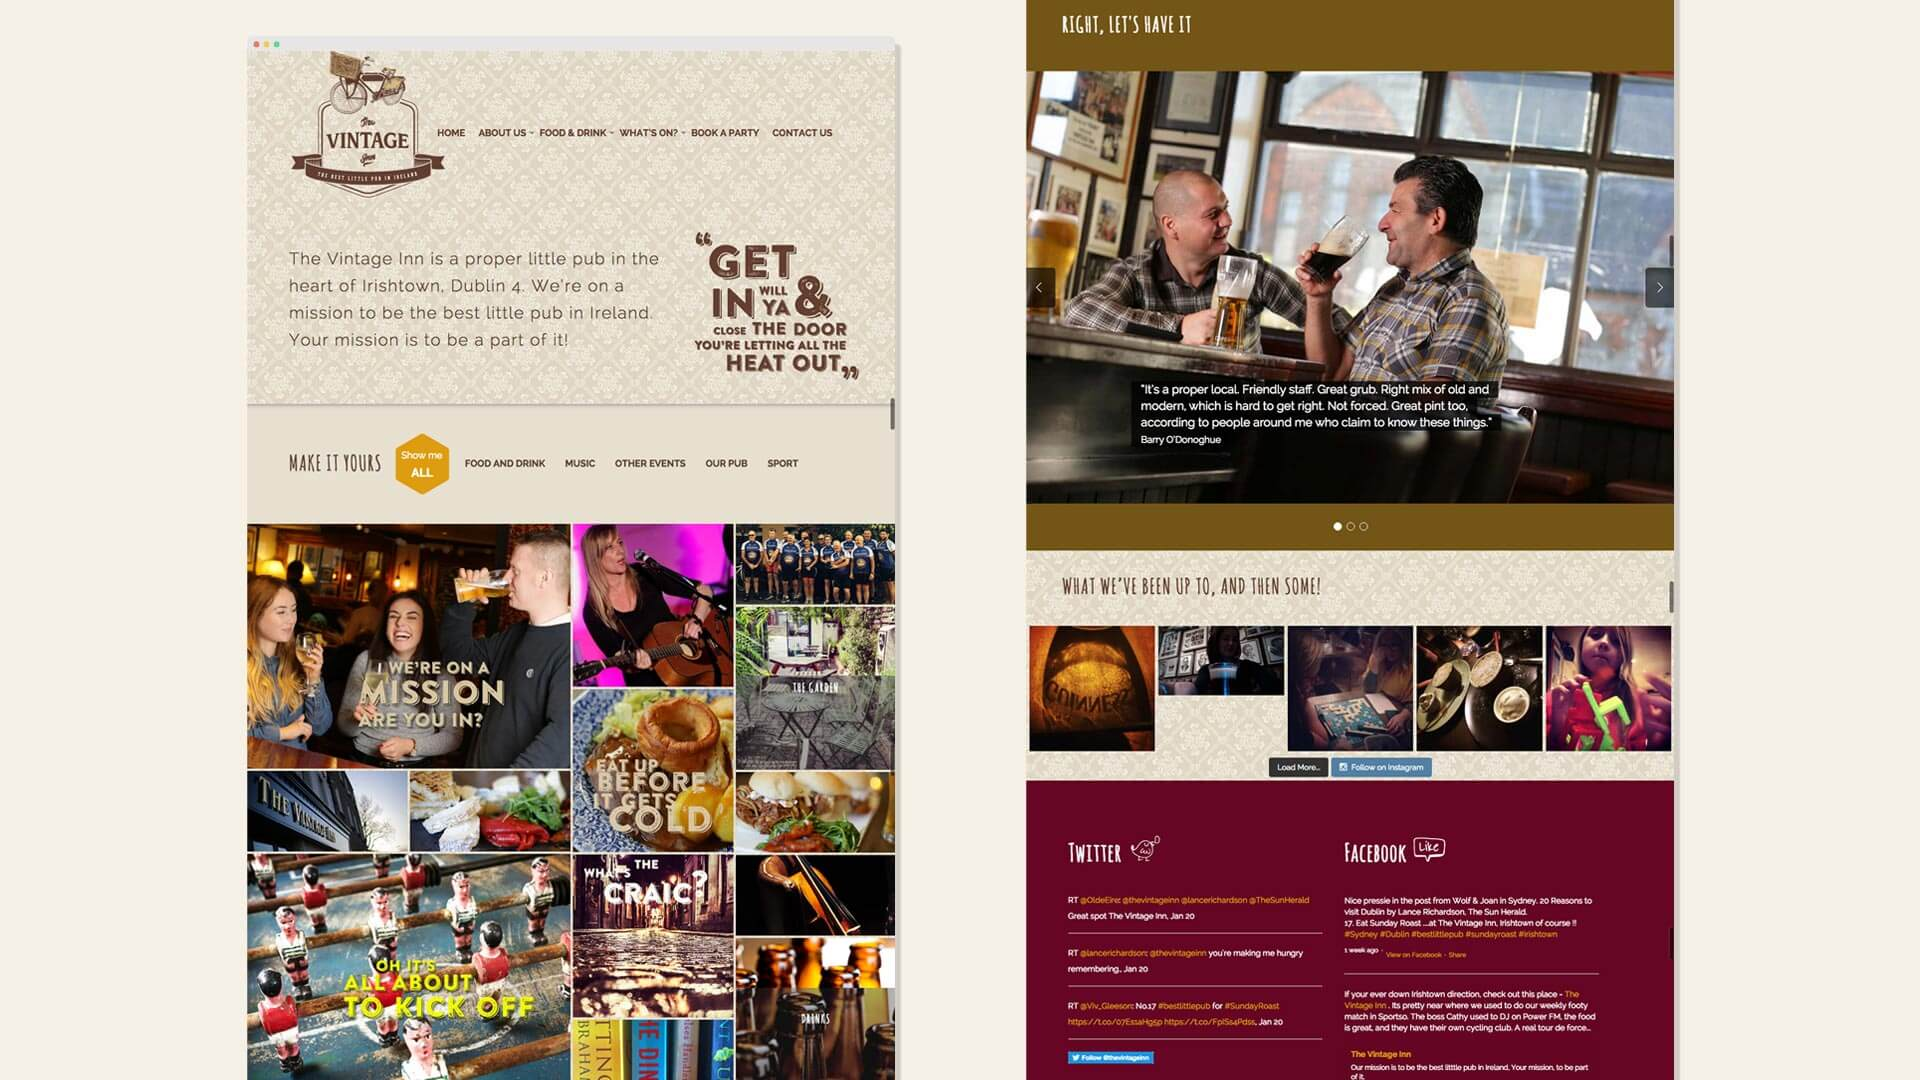 Vintage Inn Web Homepage